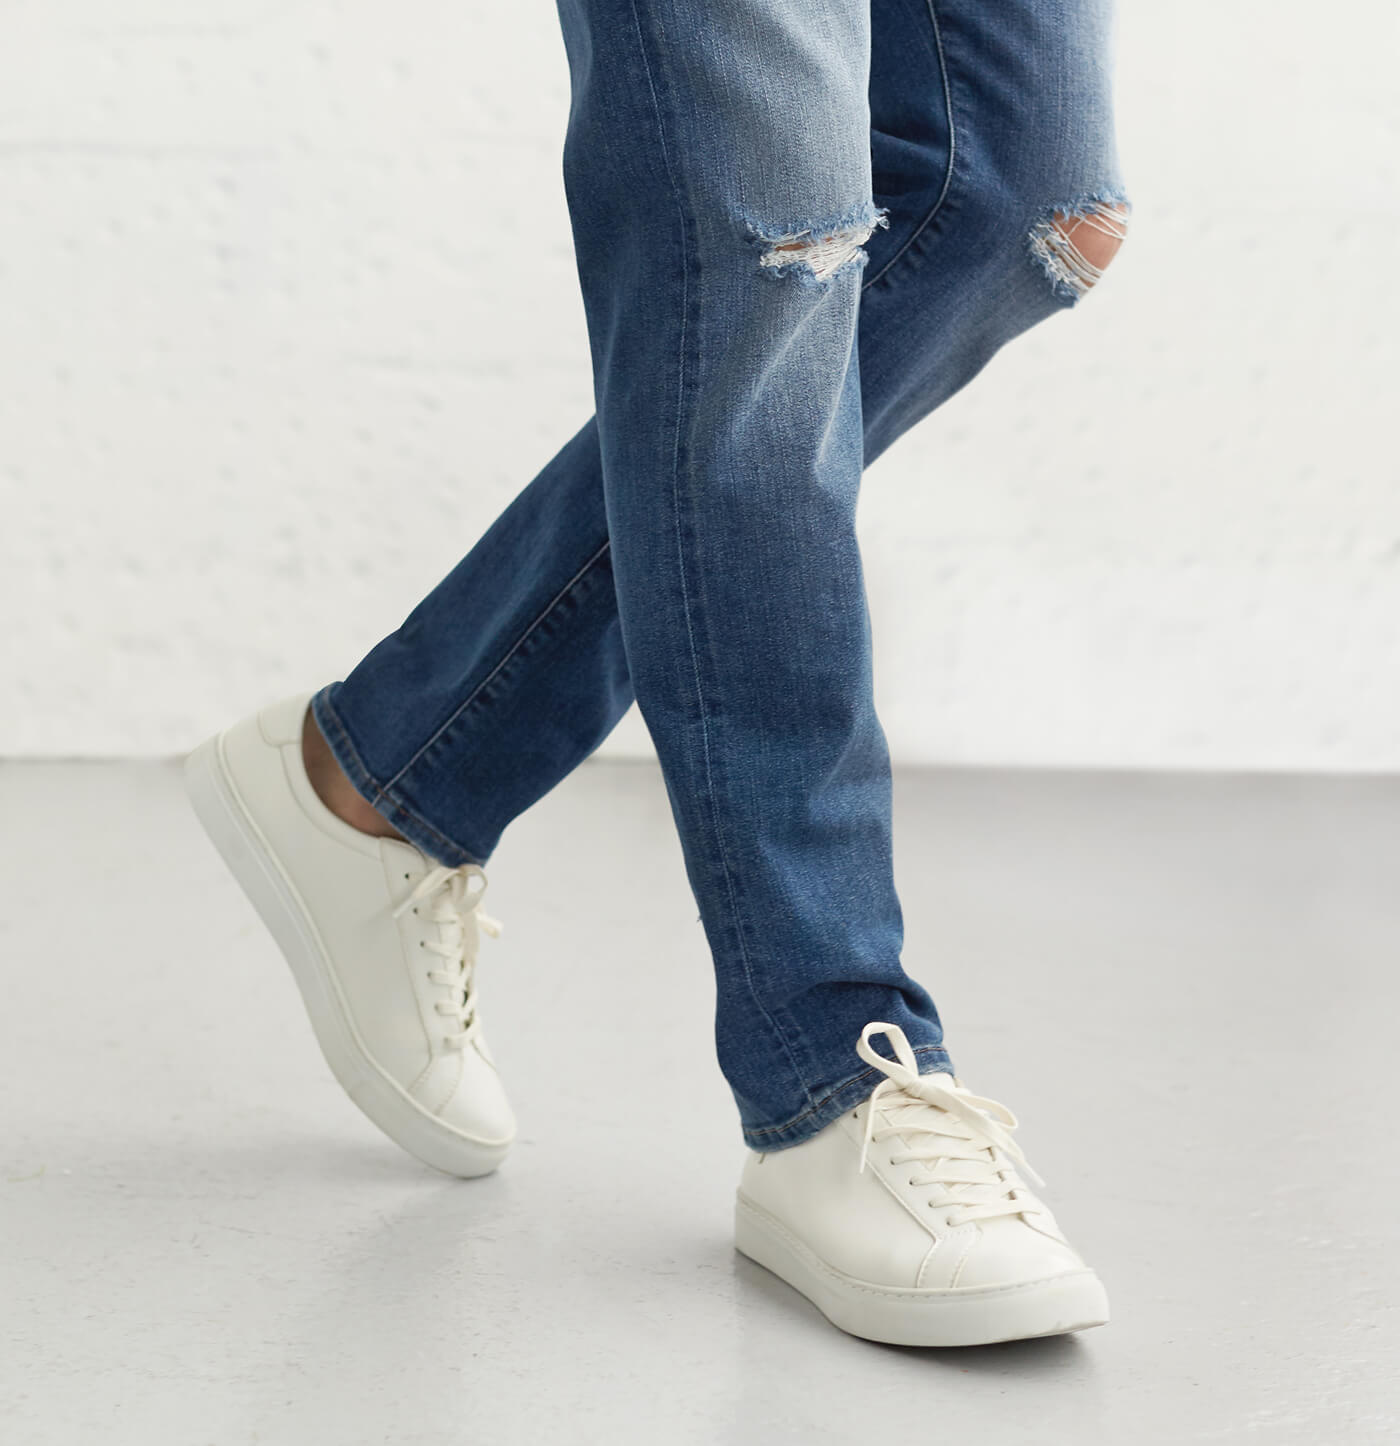 To acquire How to ankle wear shoes with jeans picture trends